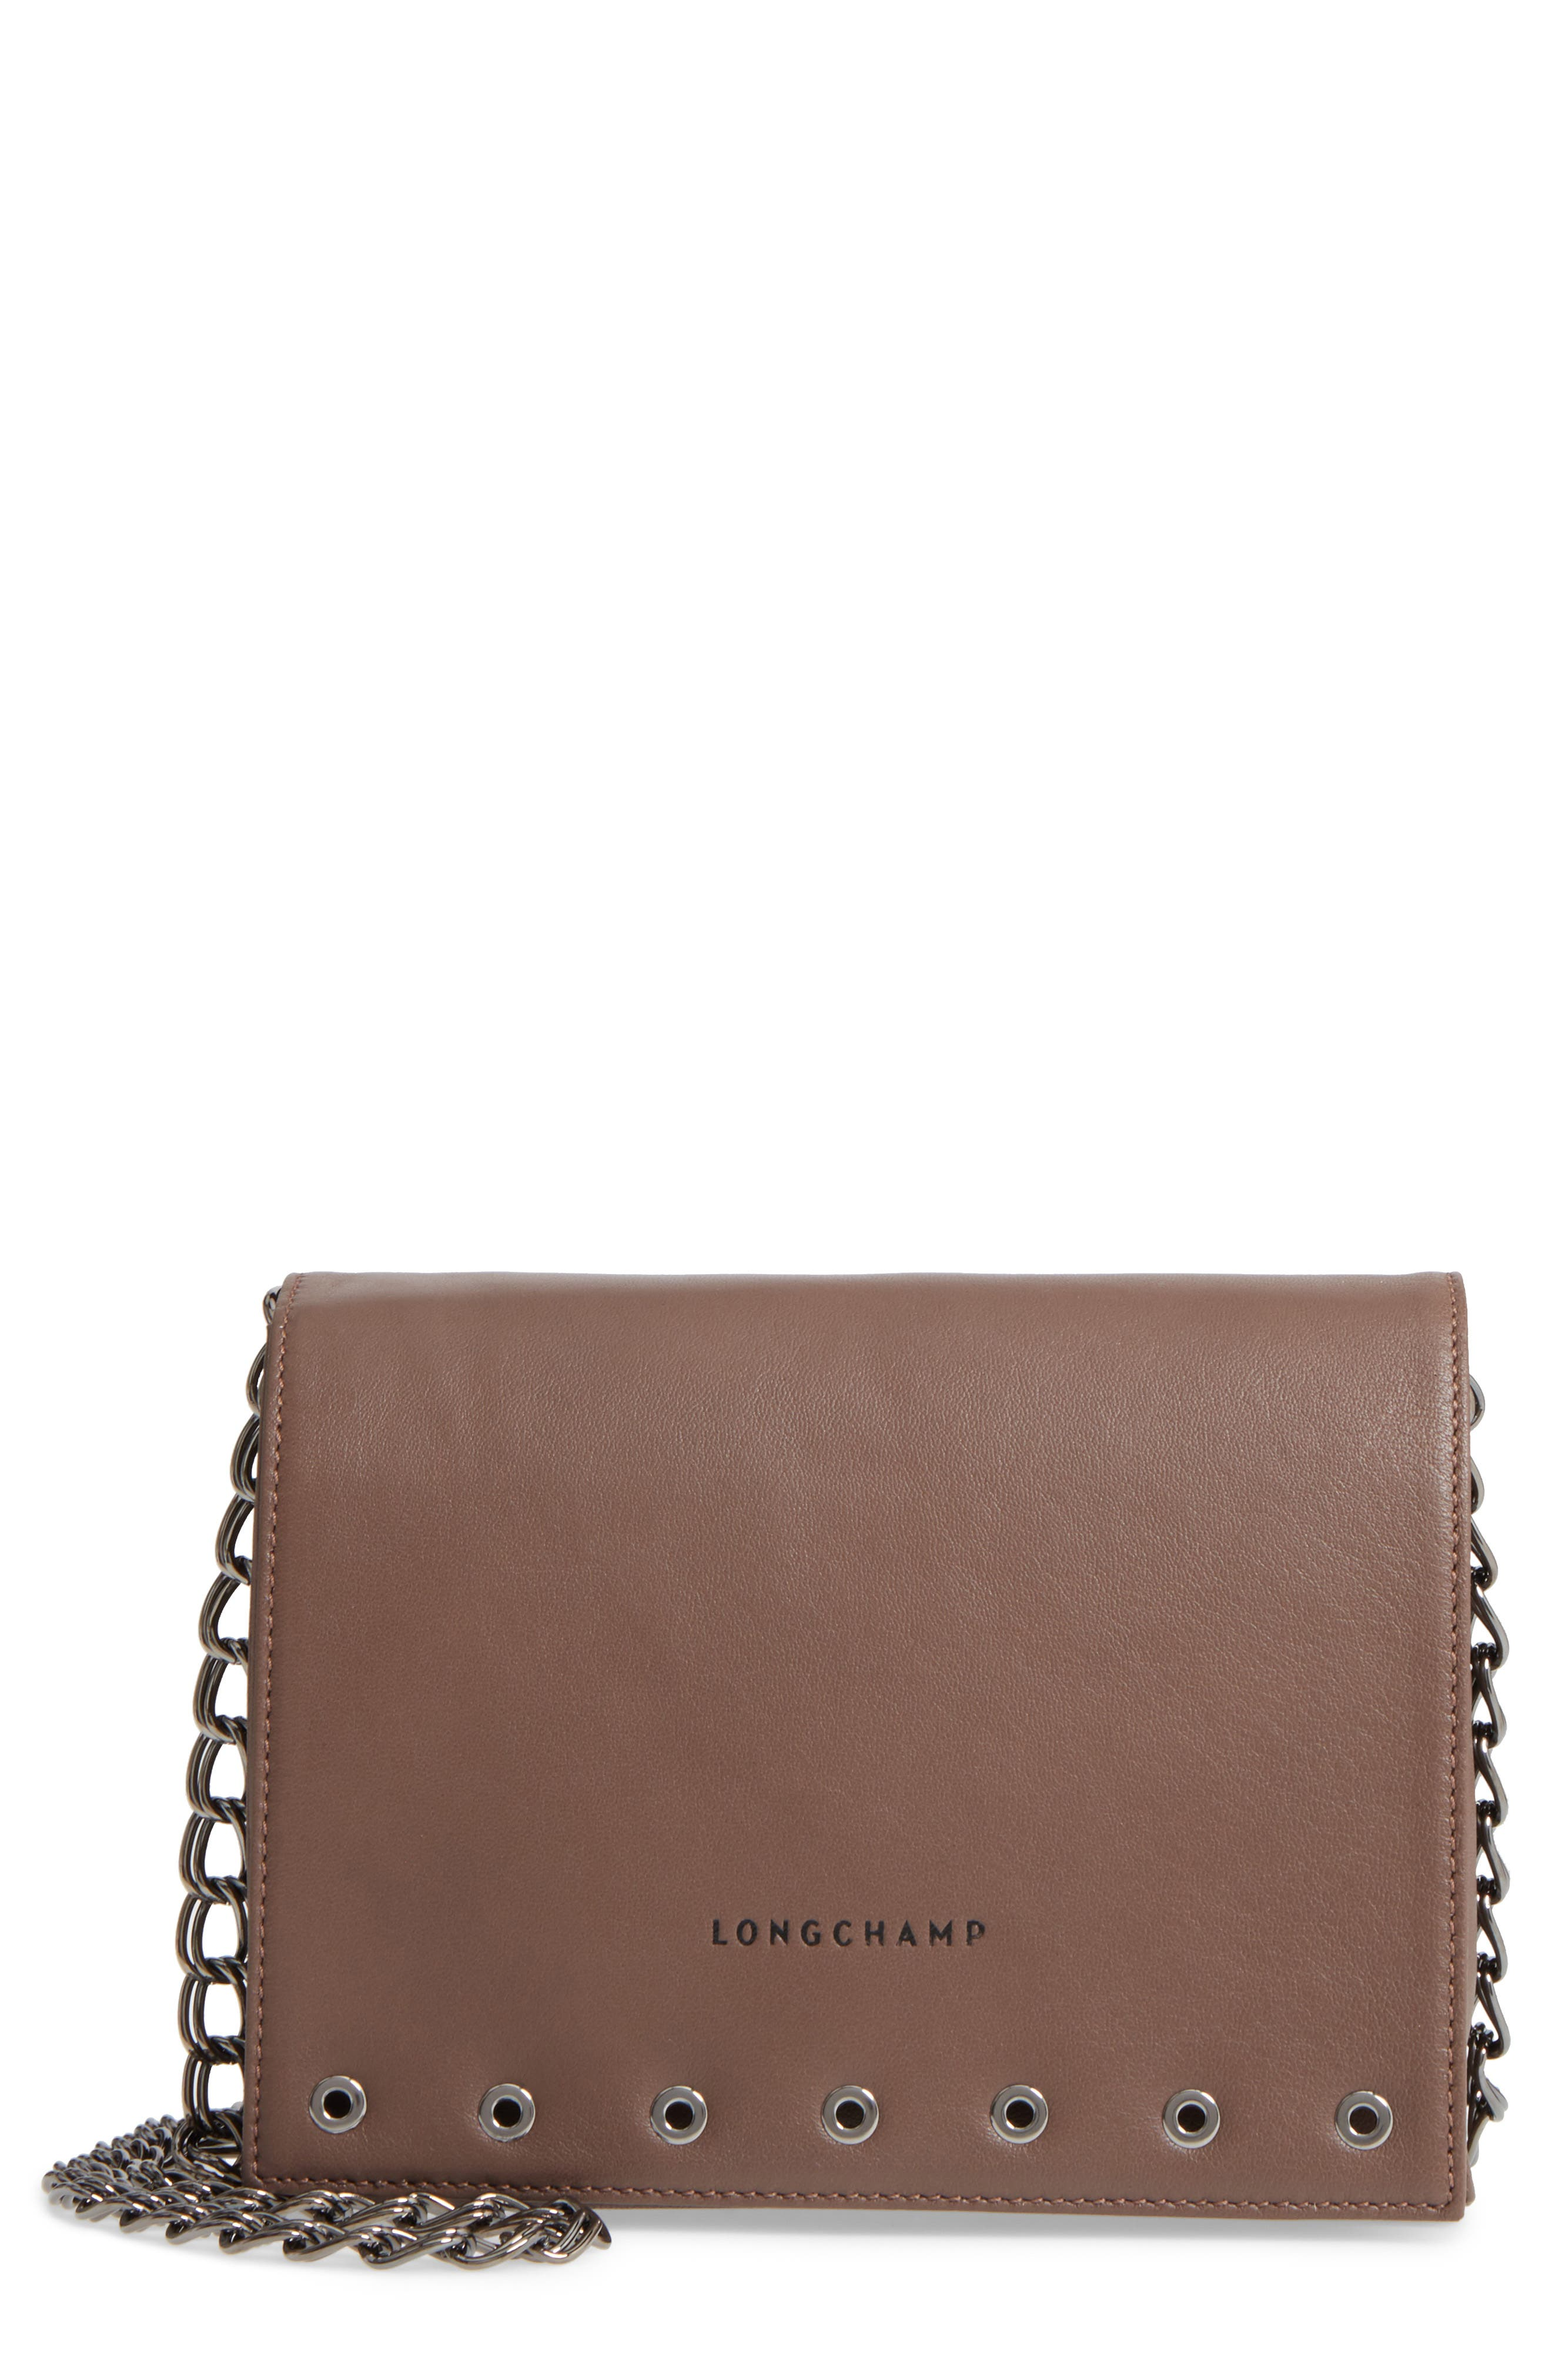 Longchamp Paris Rocks Crossbody Bag